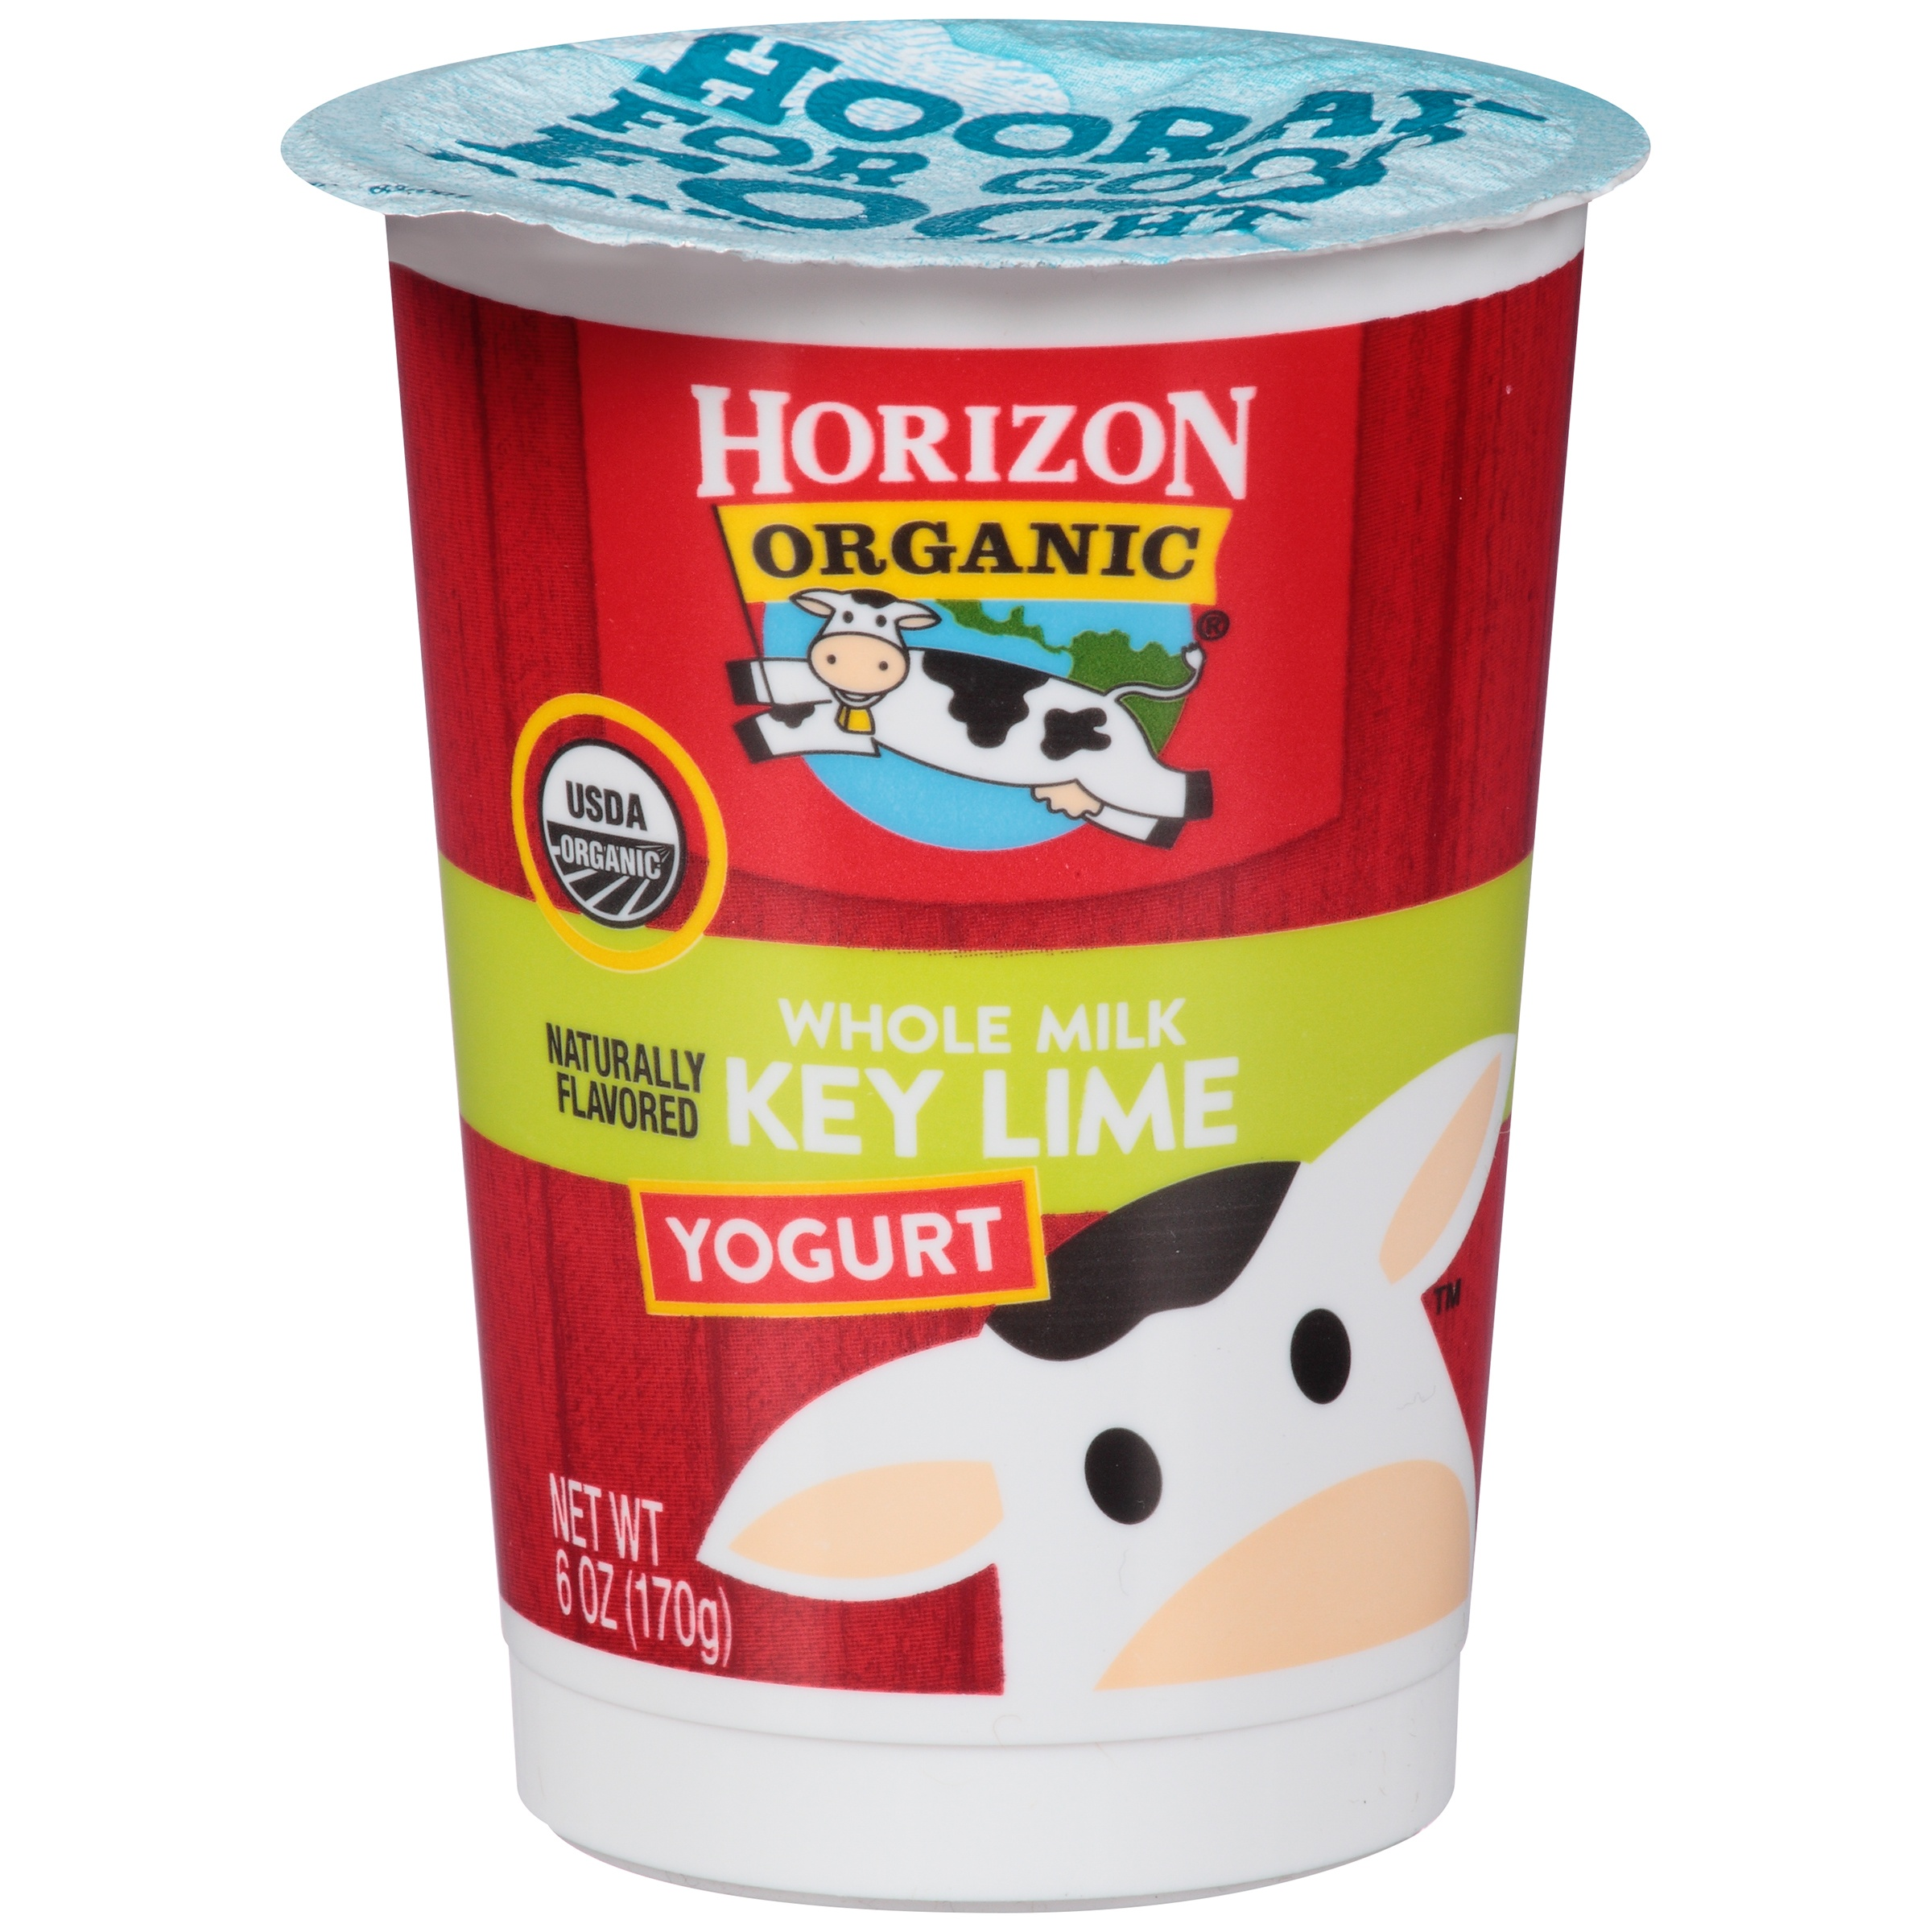 Horizon Organic Whole Milk Key Lime Yogurt 6 Oz Walmart Com